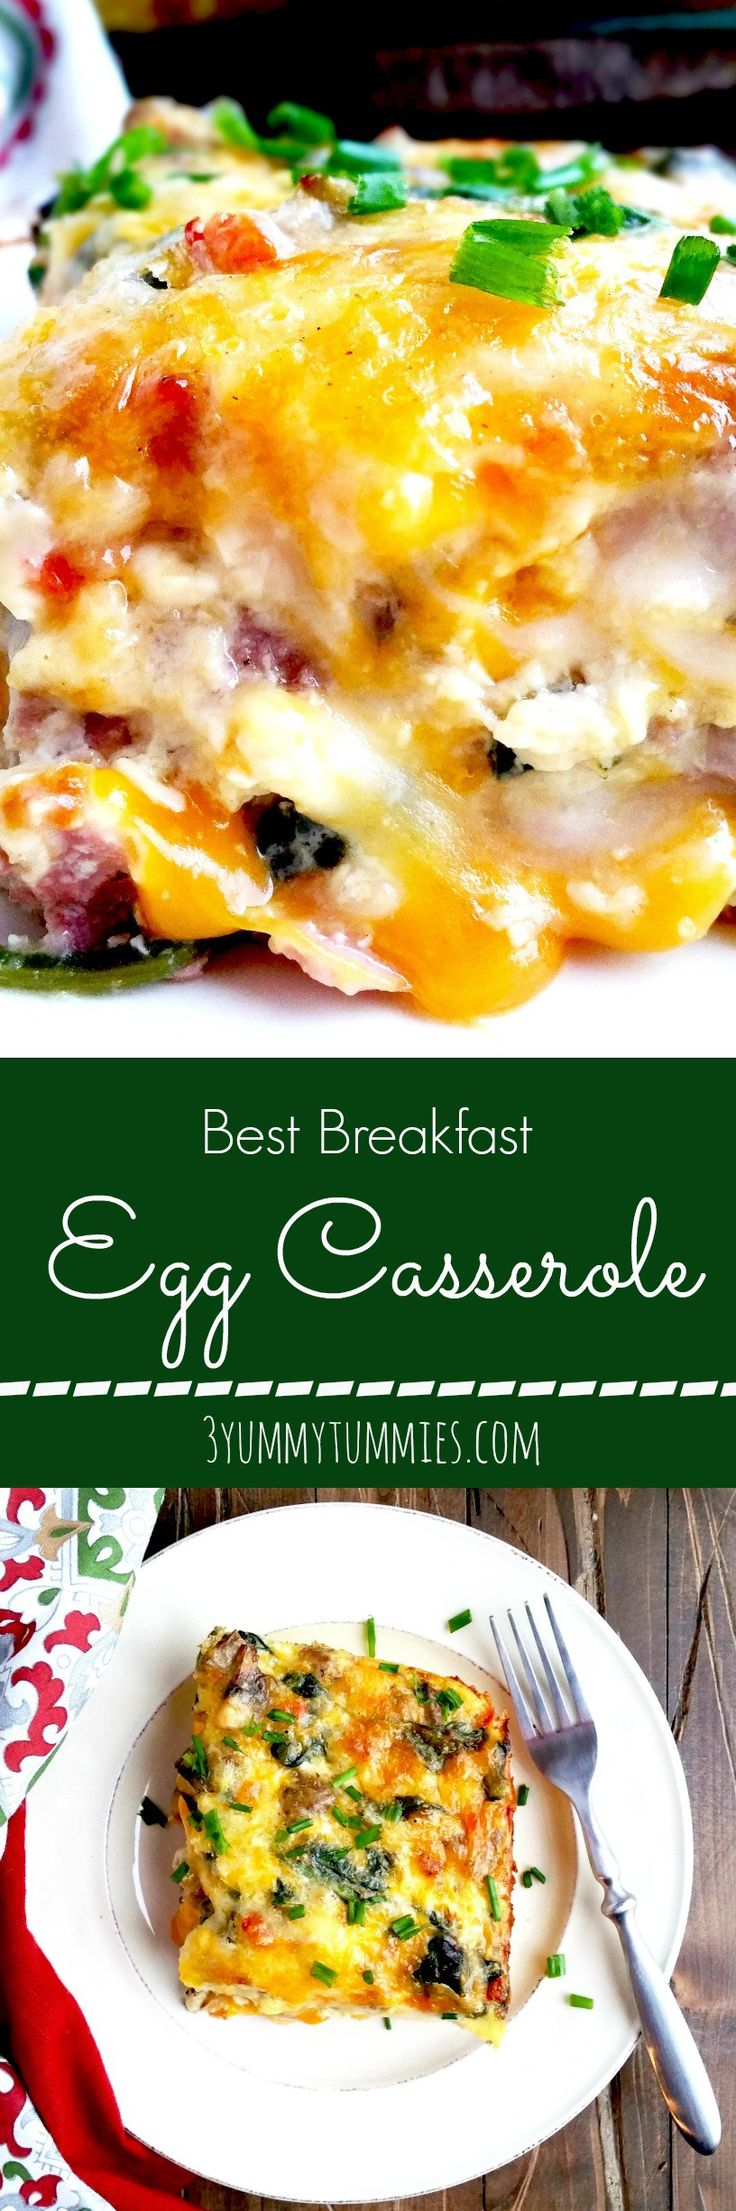 ... Breakfast Casserole on Pinterest | Breakfast Casserole, Casseroles and